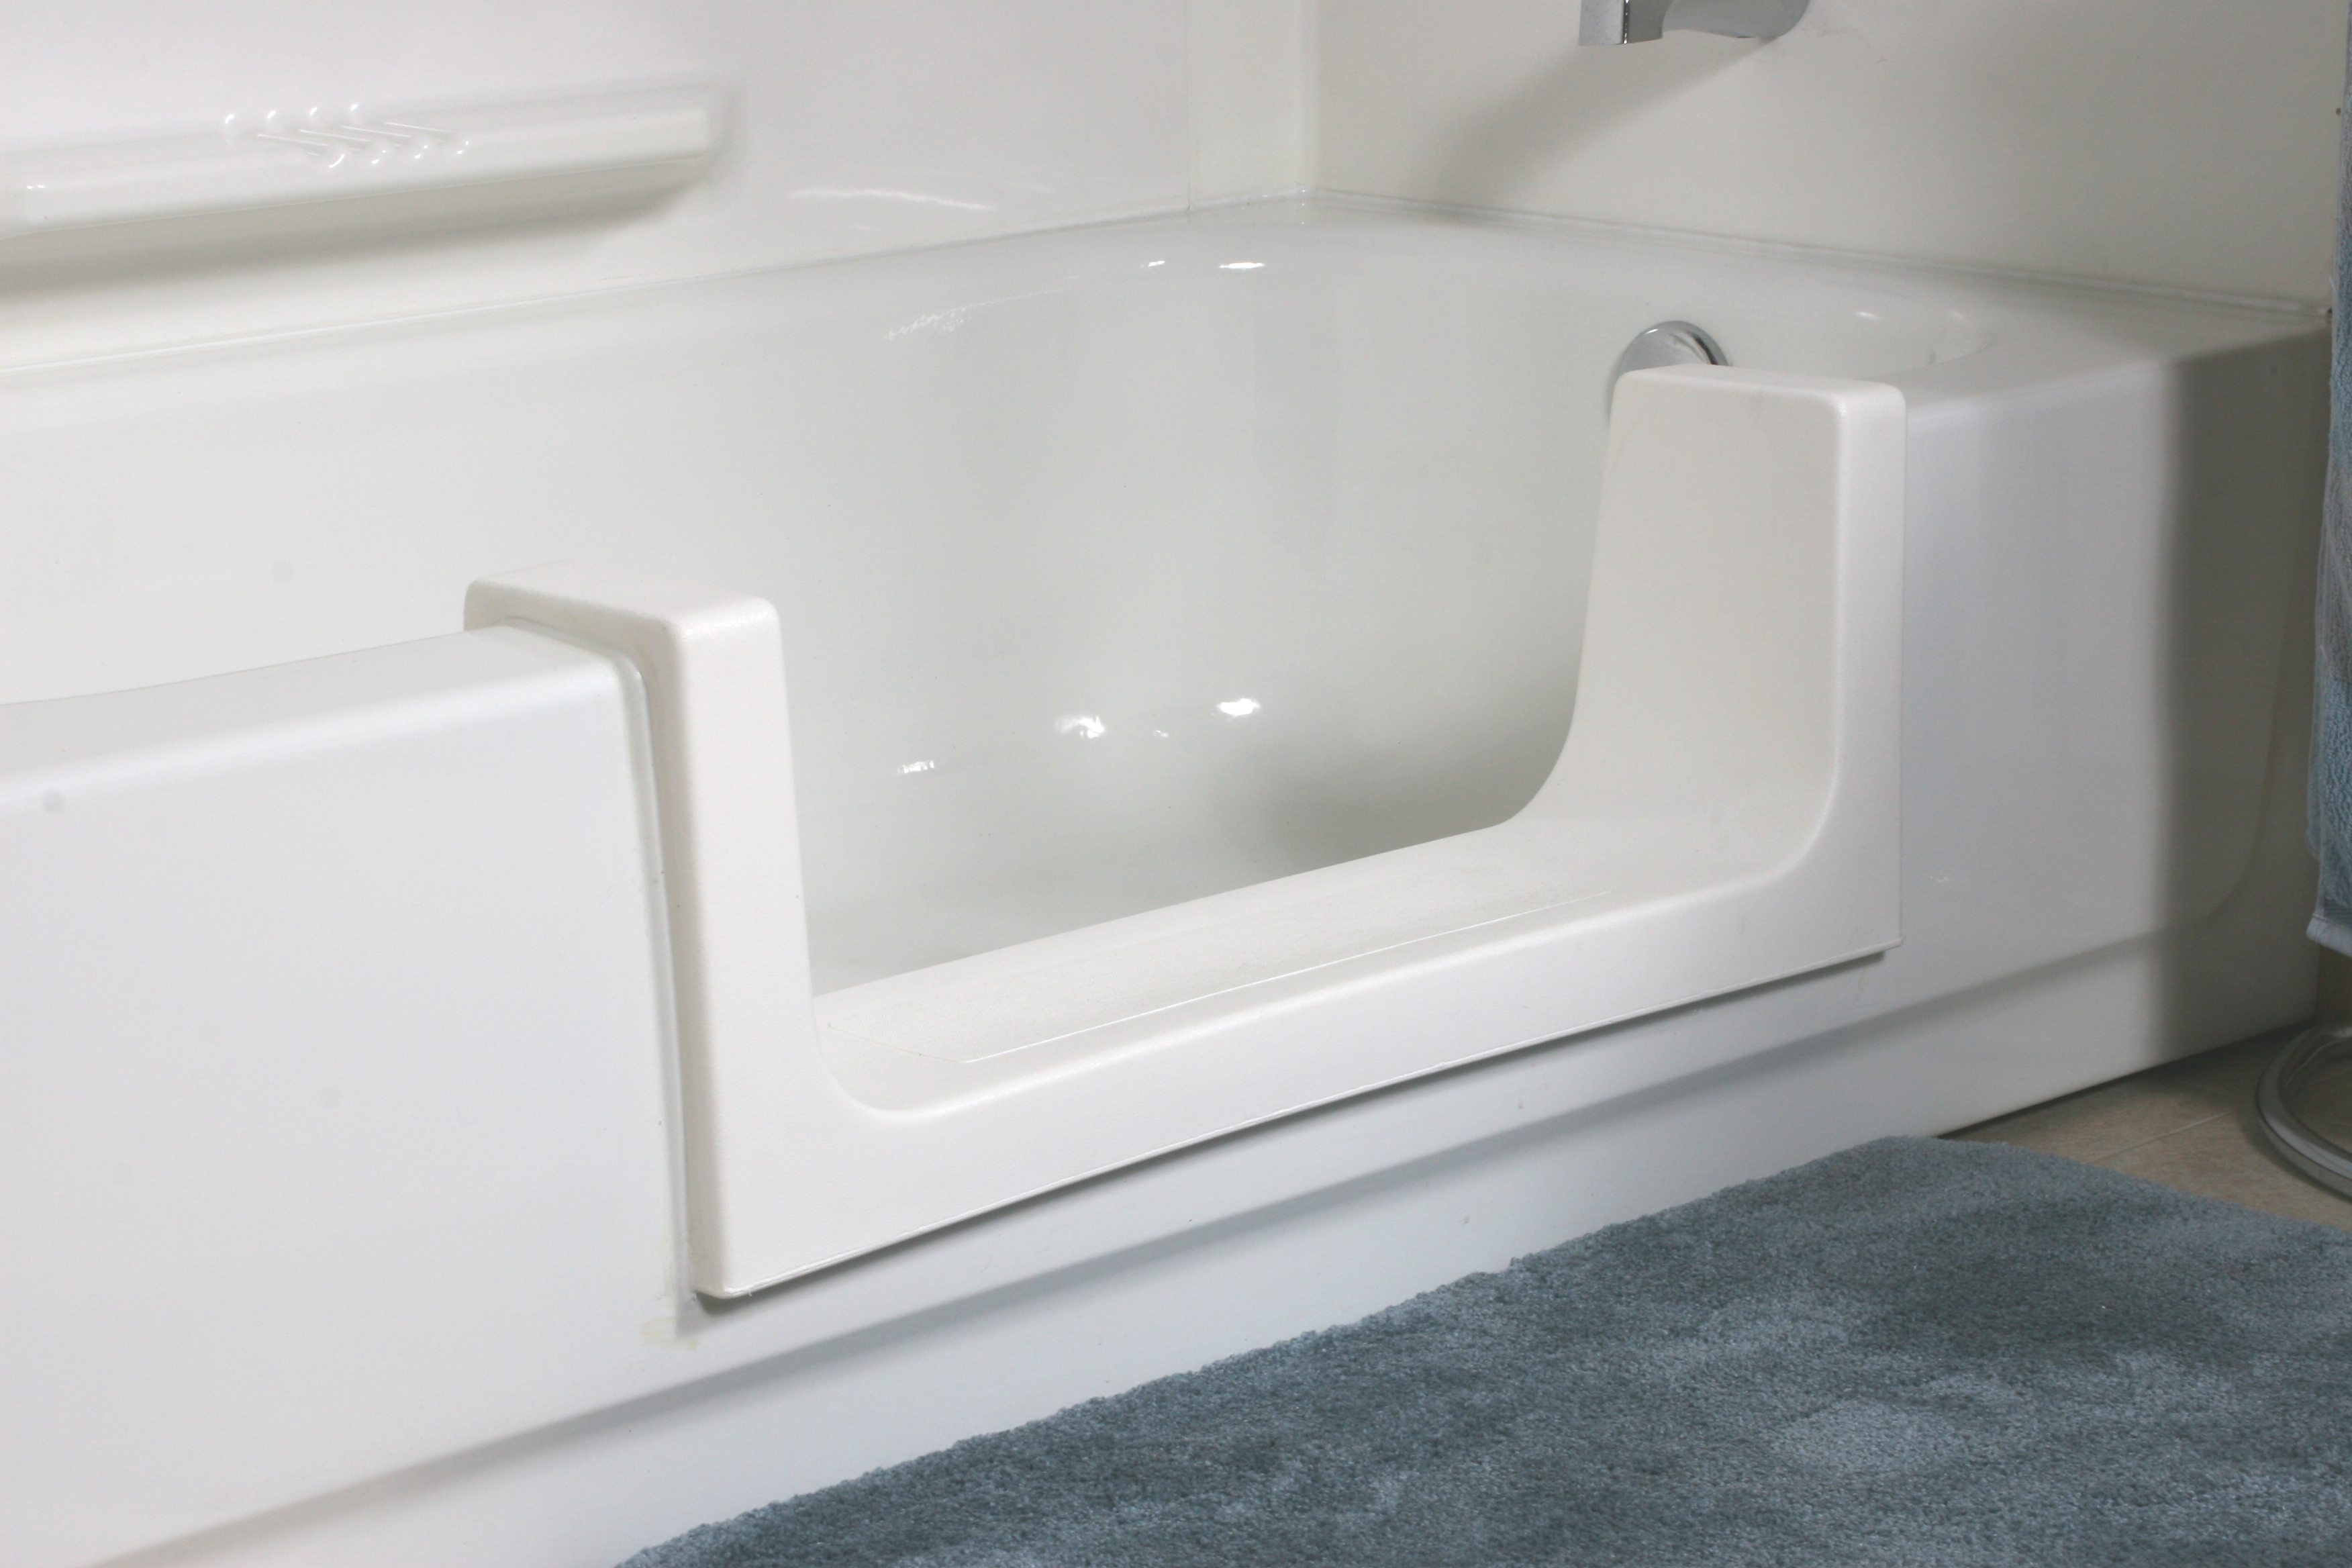 Safeway Tub Door Amp Safeway Step Provide Low Cost Aging In Place Solution For Easier Bathtub